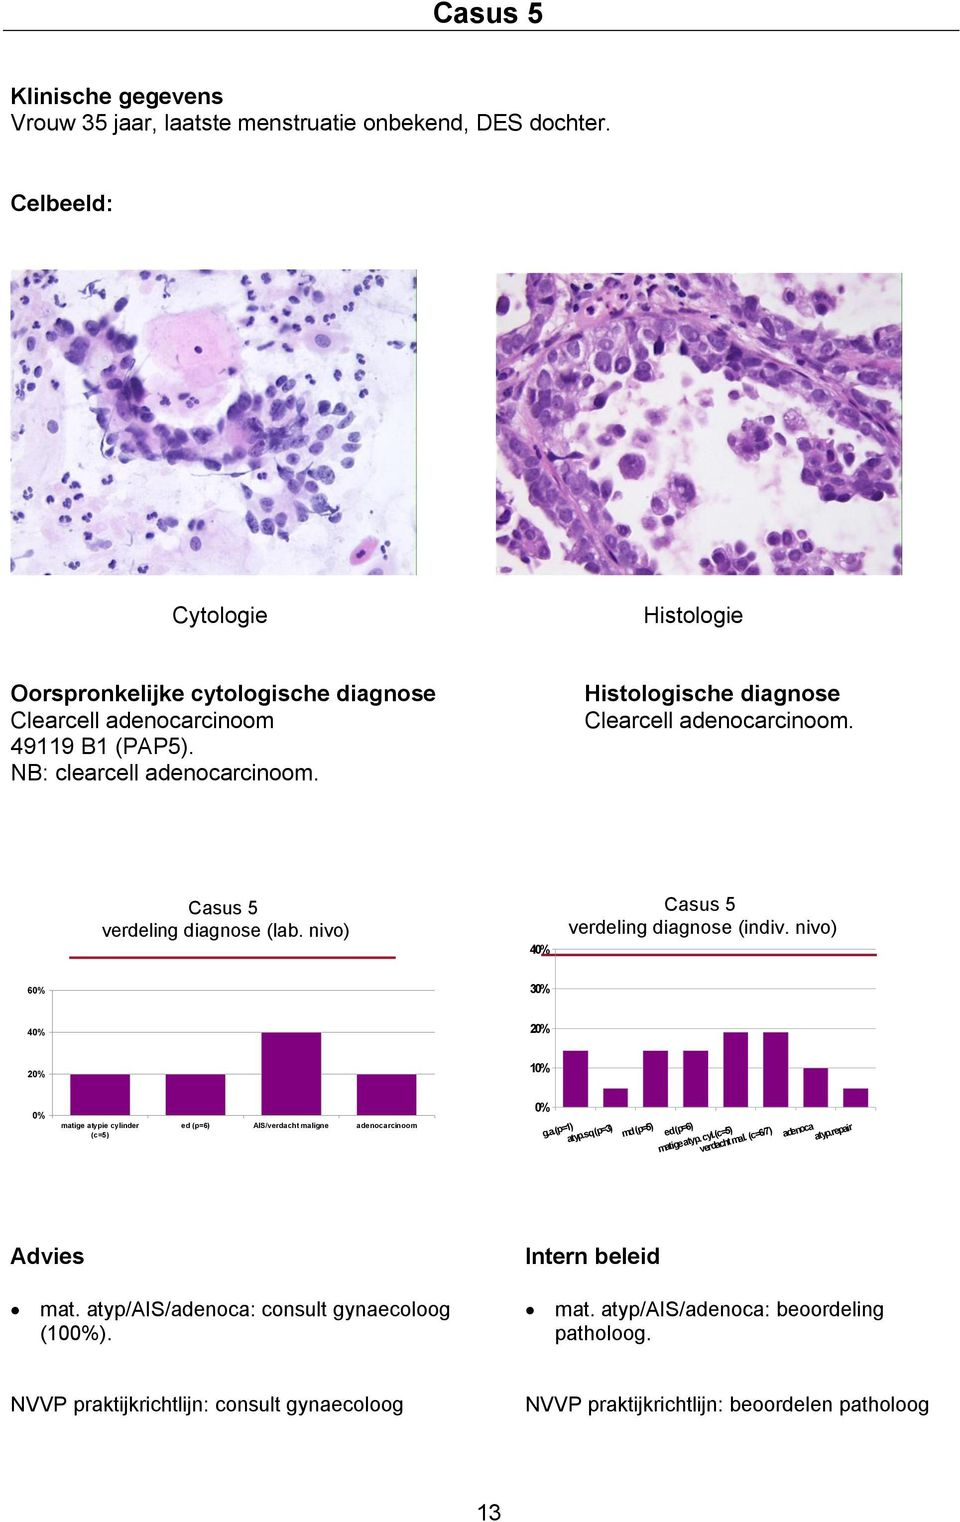 Casus 5 verdeling diagnose (lab. nivo) 4 Casus 5 verdeling diagnose (indiv. nivo) 6 3 4 matige atypie cylinder (c=5) ed (p=6) AIS/verdacht maligne adenocarcinoom 1 g.a.(p=1) atyp.